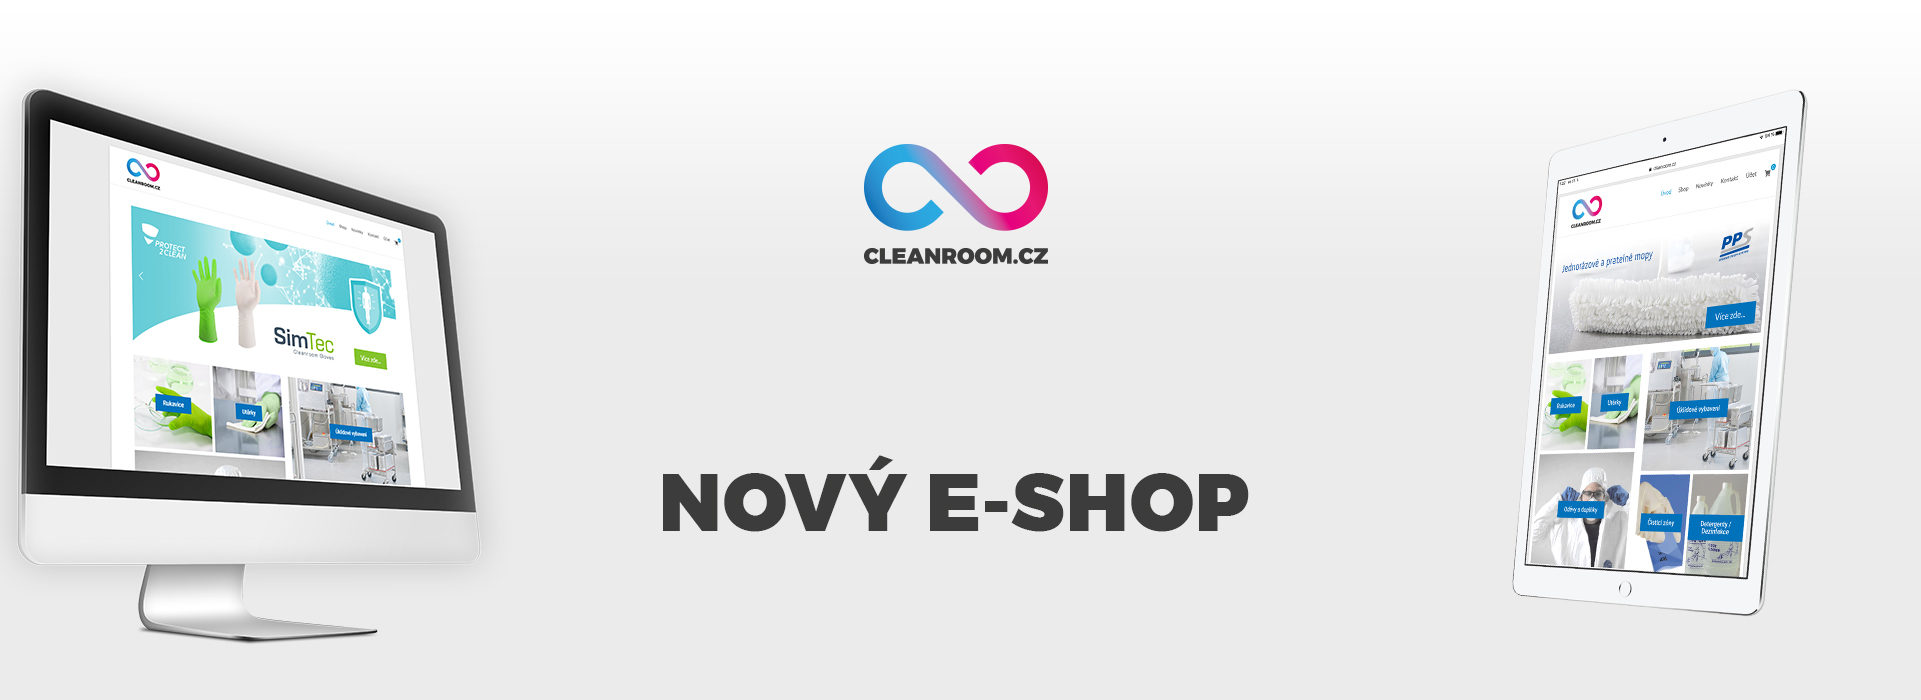 cleanroom.cz - e-shop